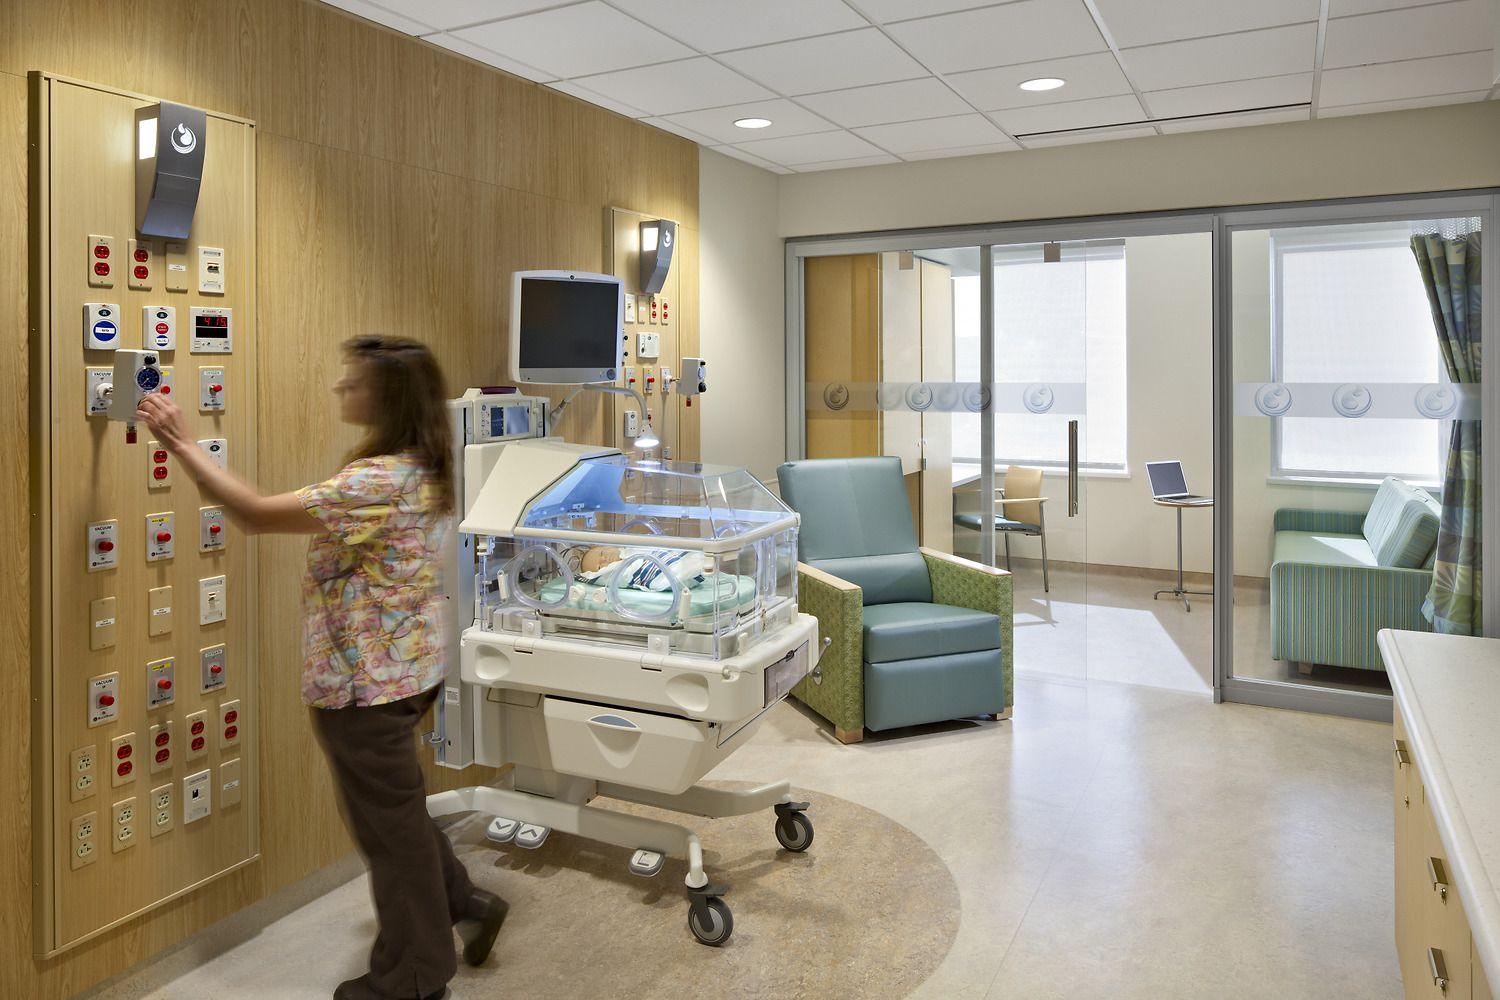 Hospital room with patient and family - Room